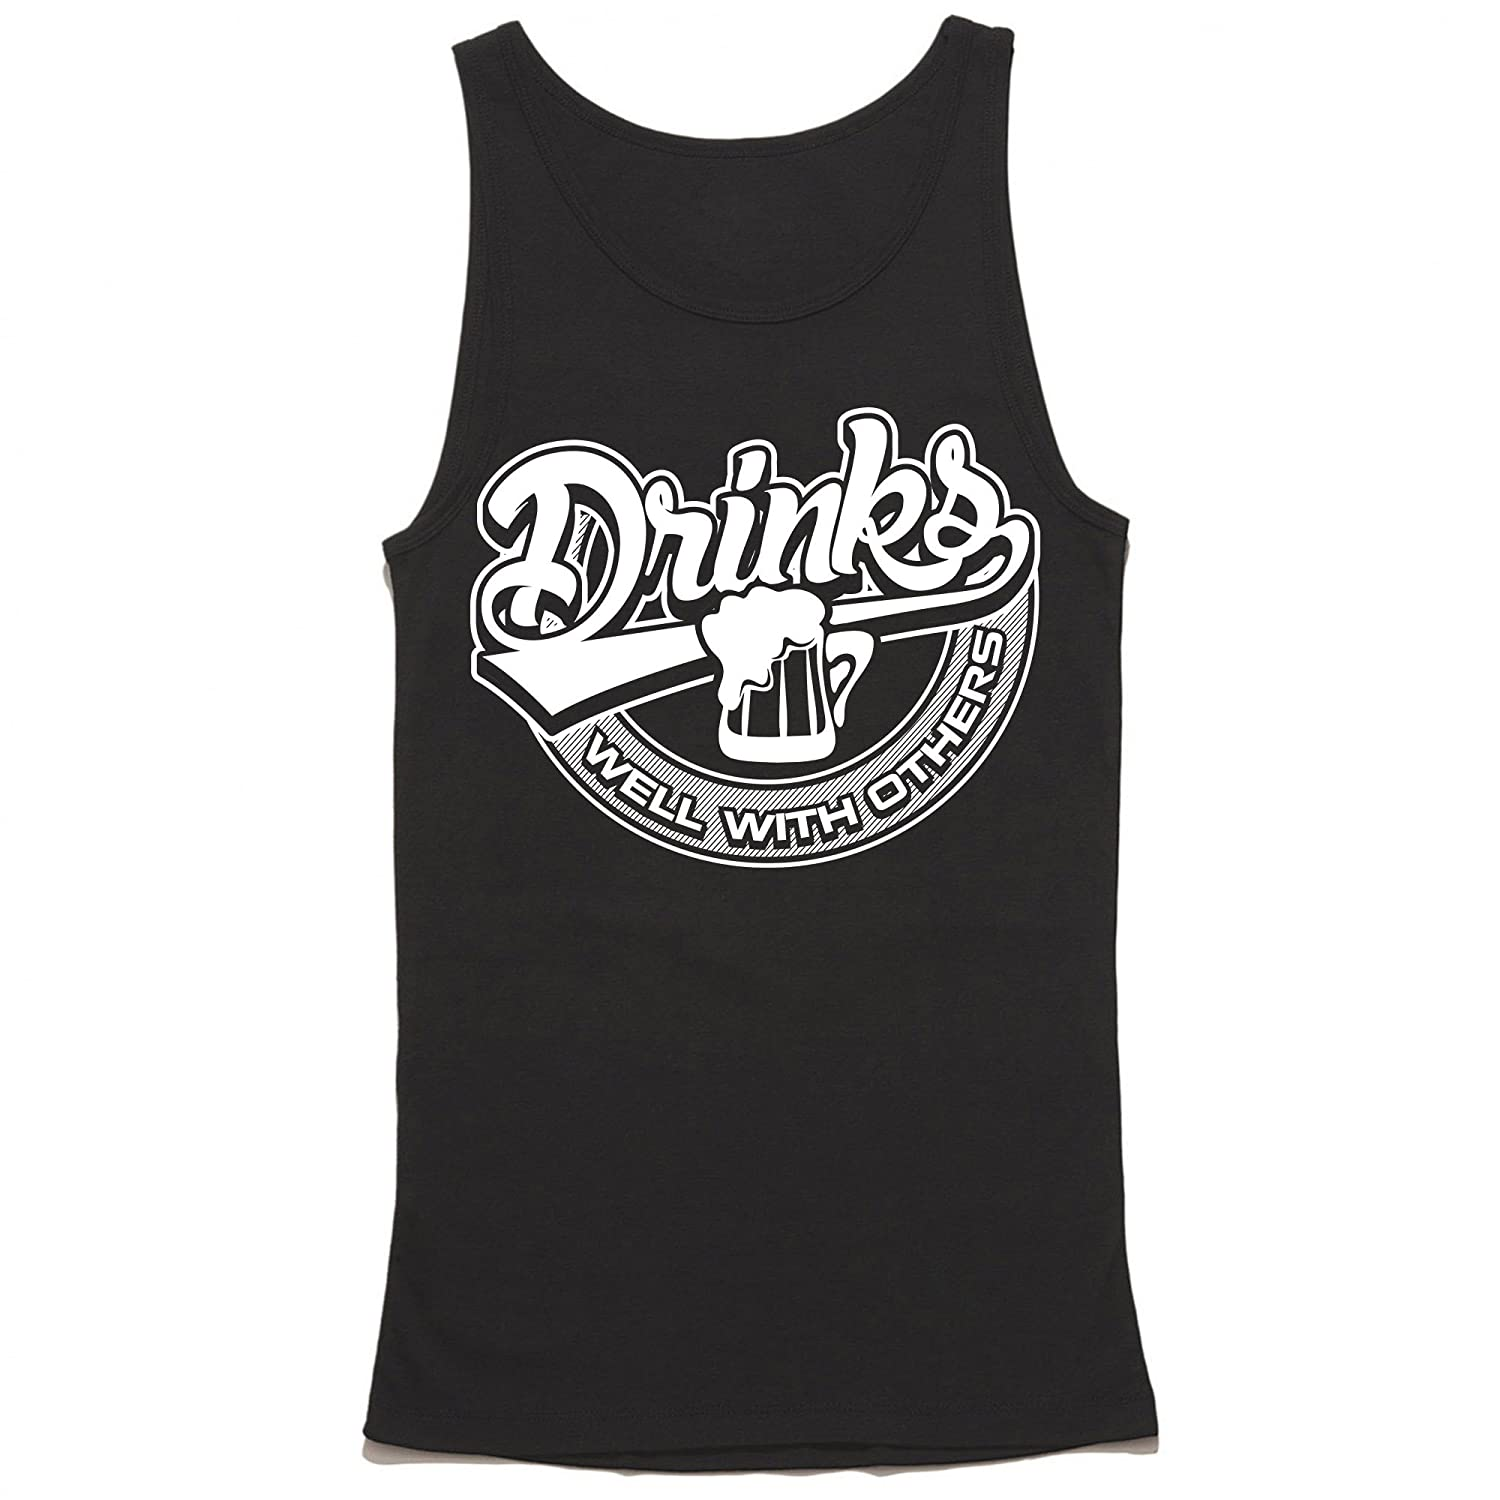 f85b672ff6d51 Amazon.com  Drinks Well with Others Tank Top - Funny Drinking Shirt - Party Tank  Top  Clothing